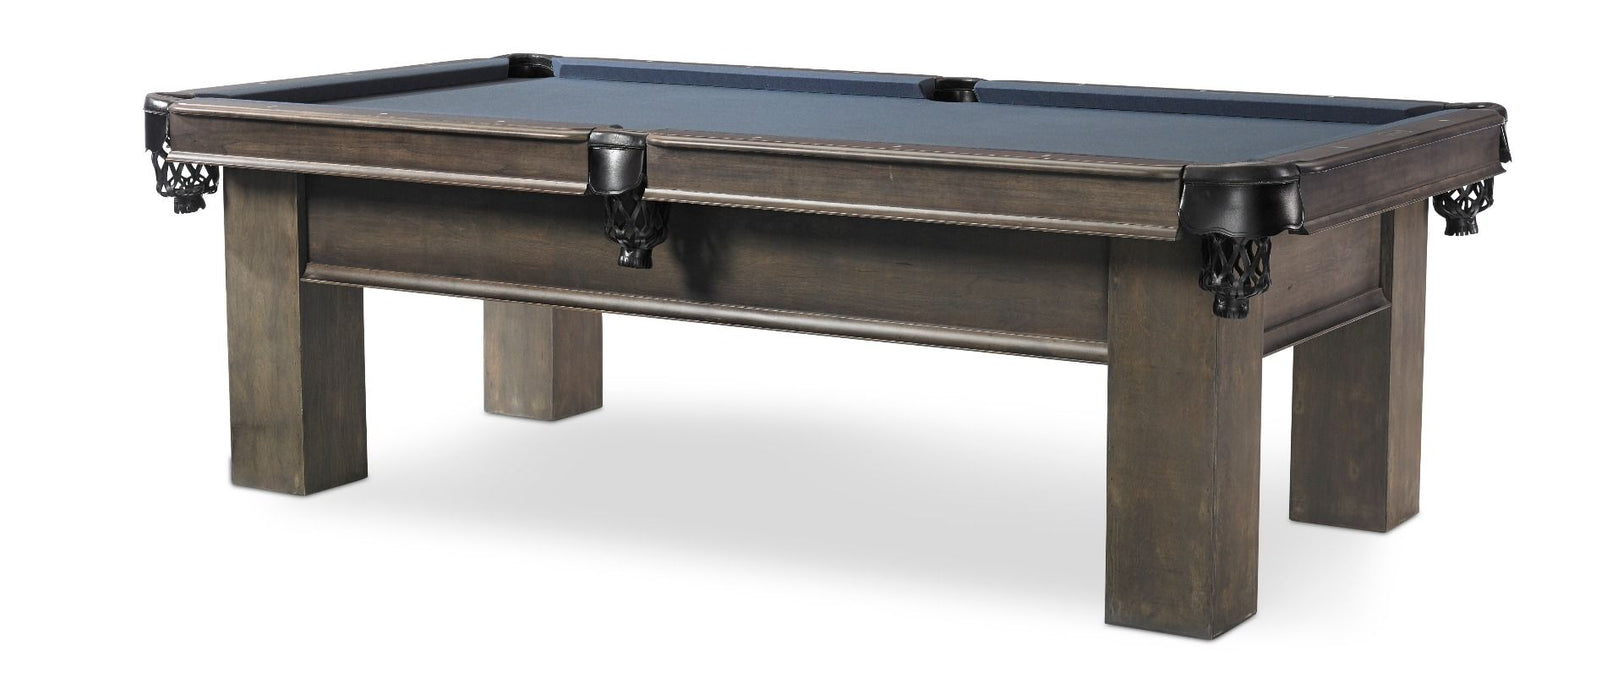 Plank and Hide Elias Pool Table stock 2